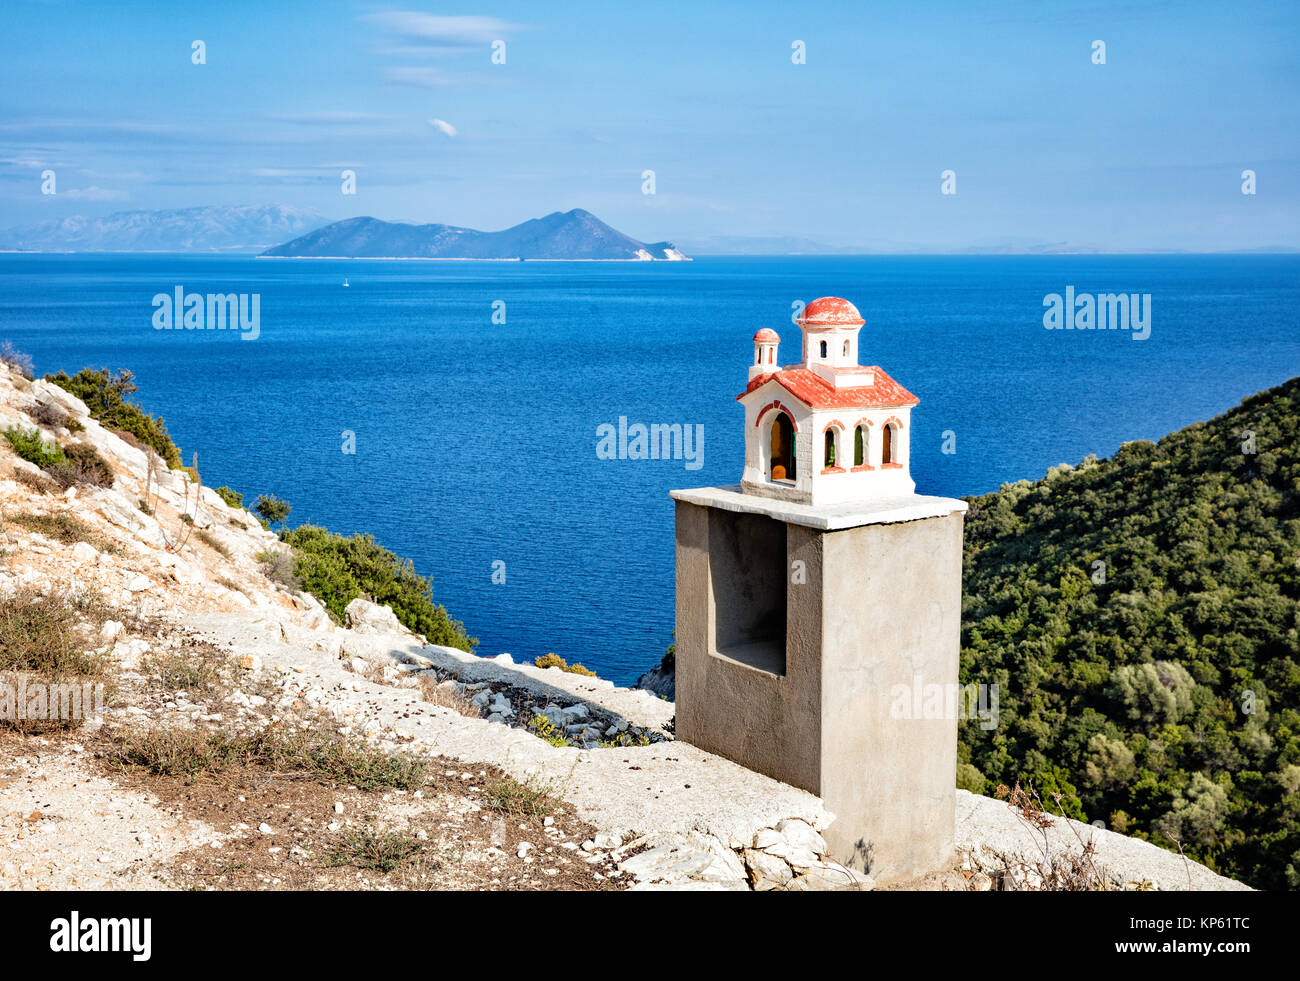 Remote roadside shrine in the form of a Greek church on the island of Ithaka in the Ionian Islands - Stock Image